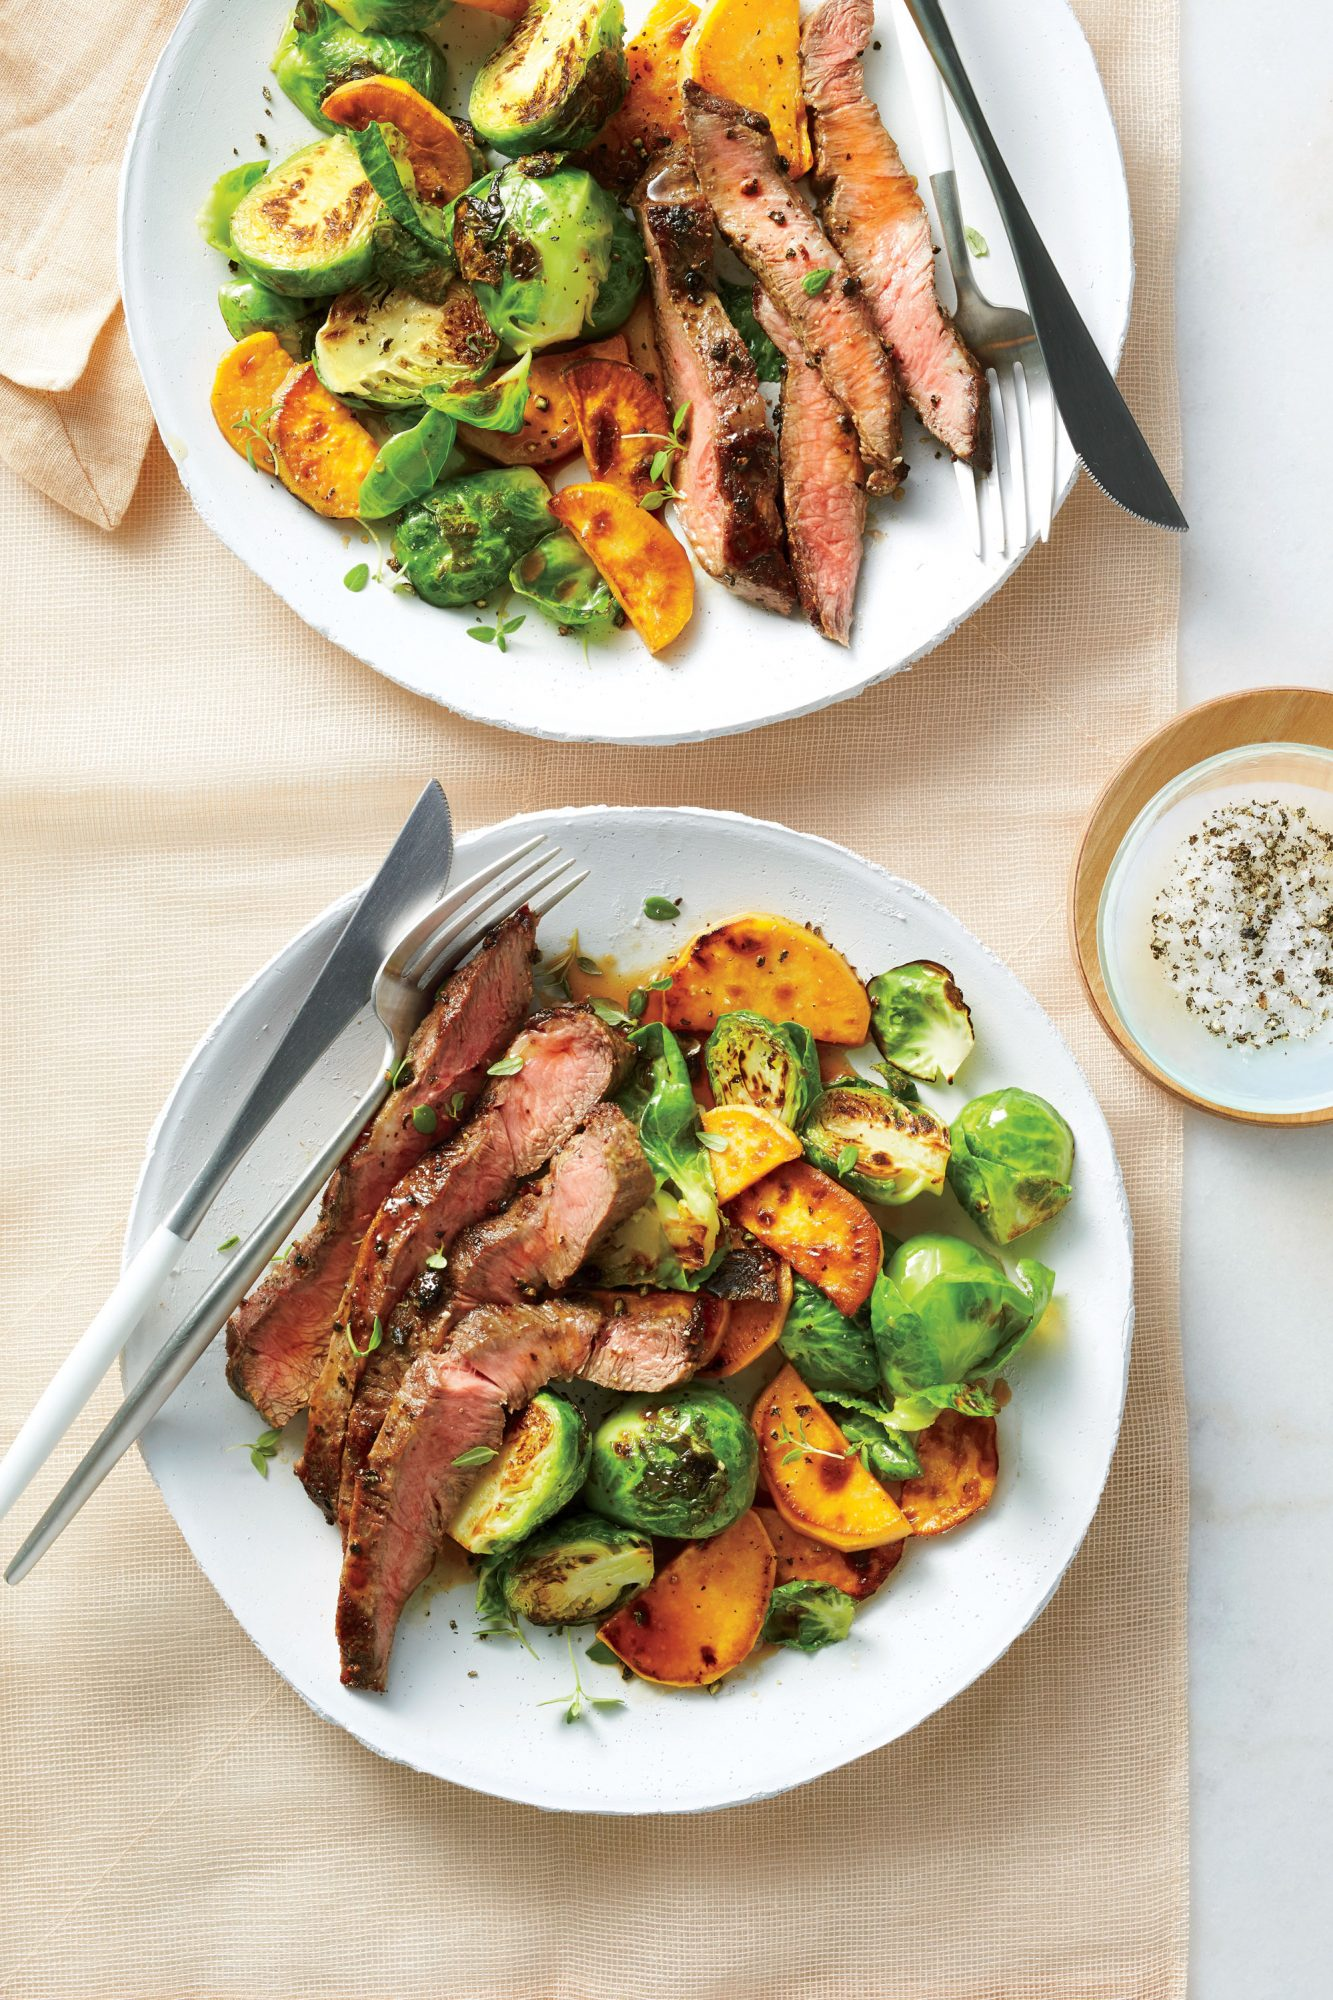 Broiled Flat Iron Steak with Brussels Sprouts and Sweet Potatoes image